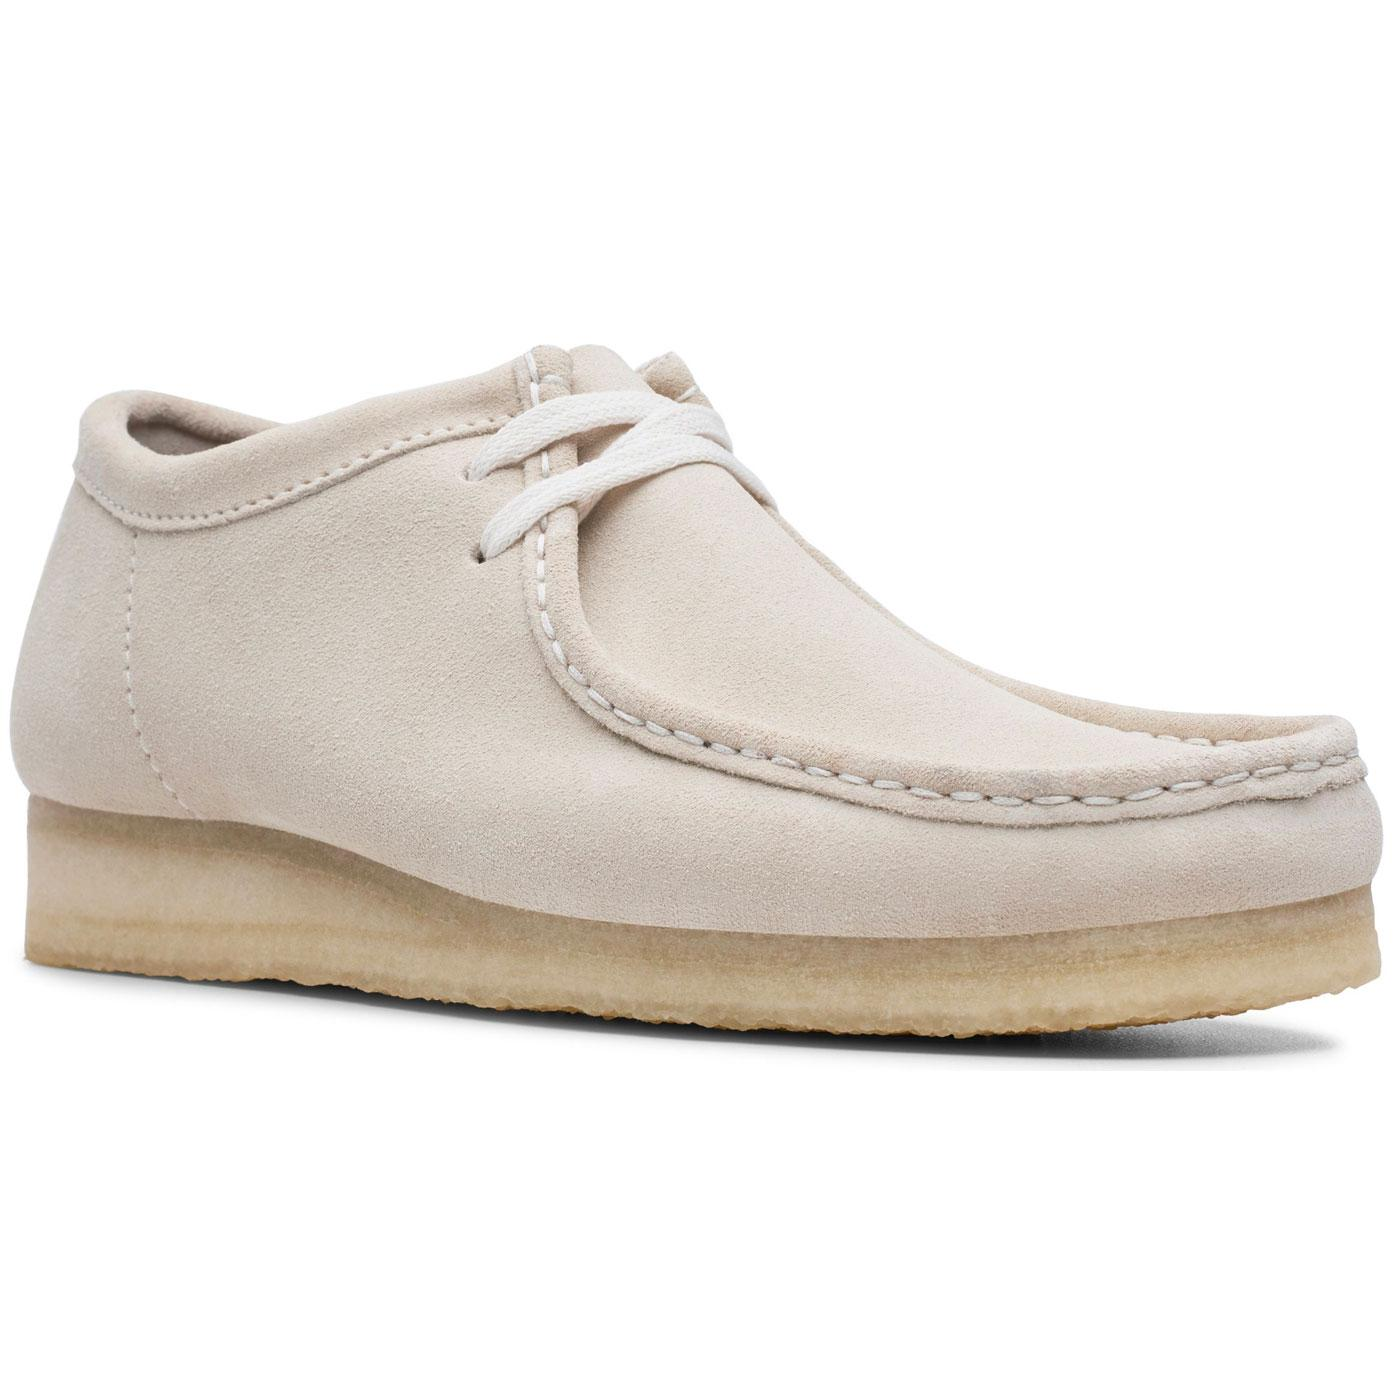 Wallabee CLARKS ORIGINALS Mod Moccasin Shoes (OW)